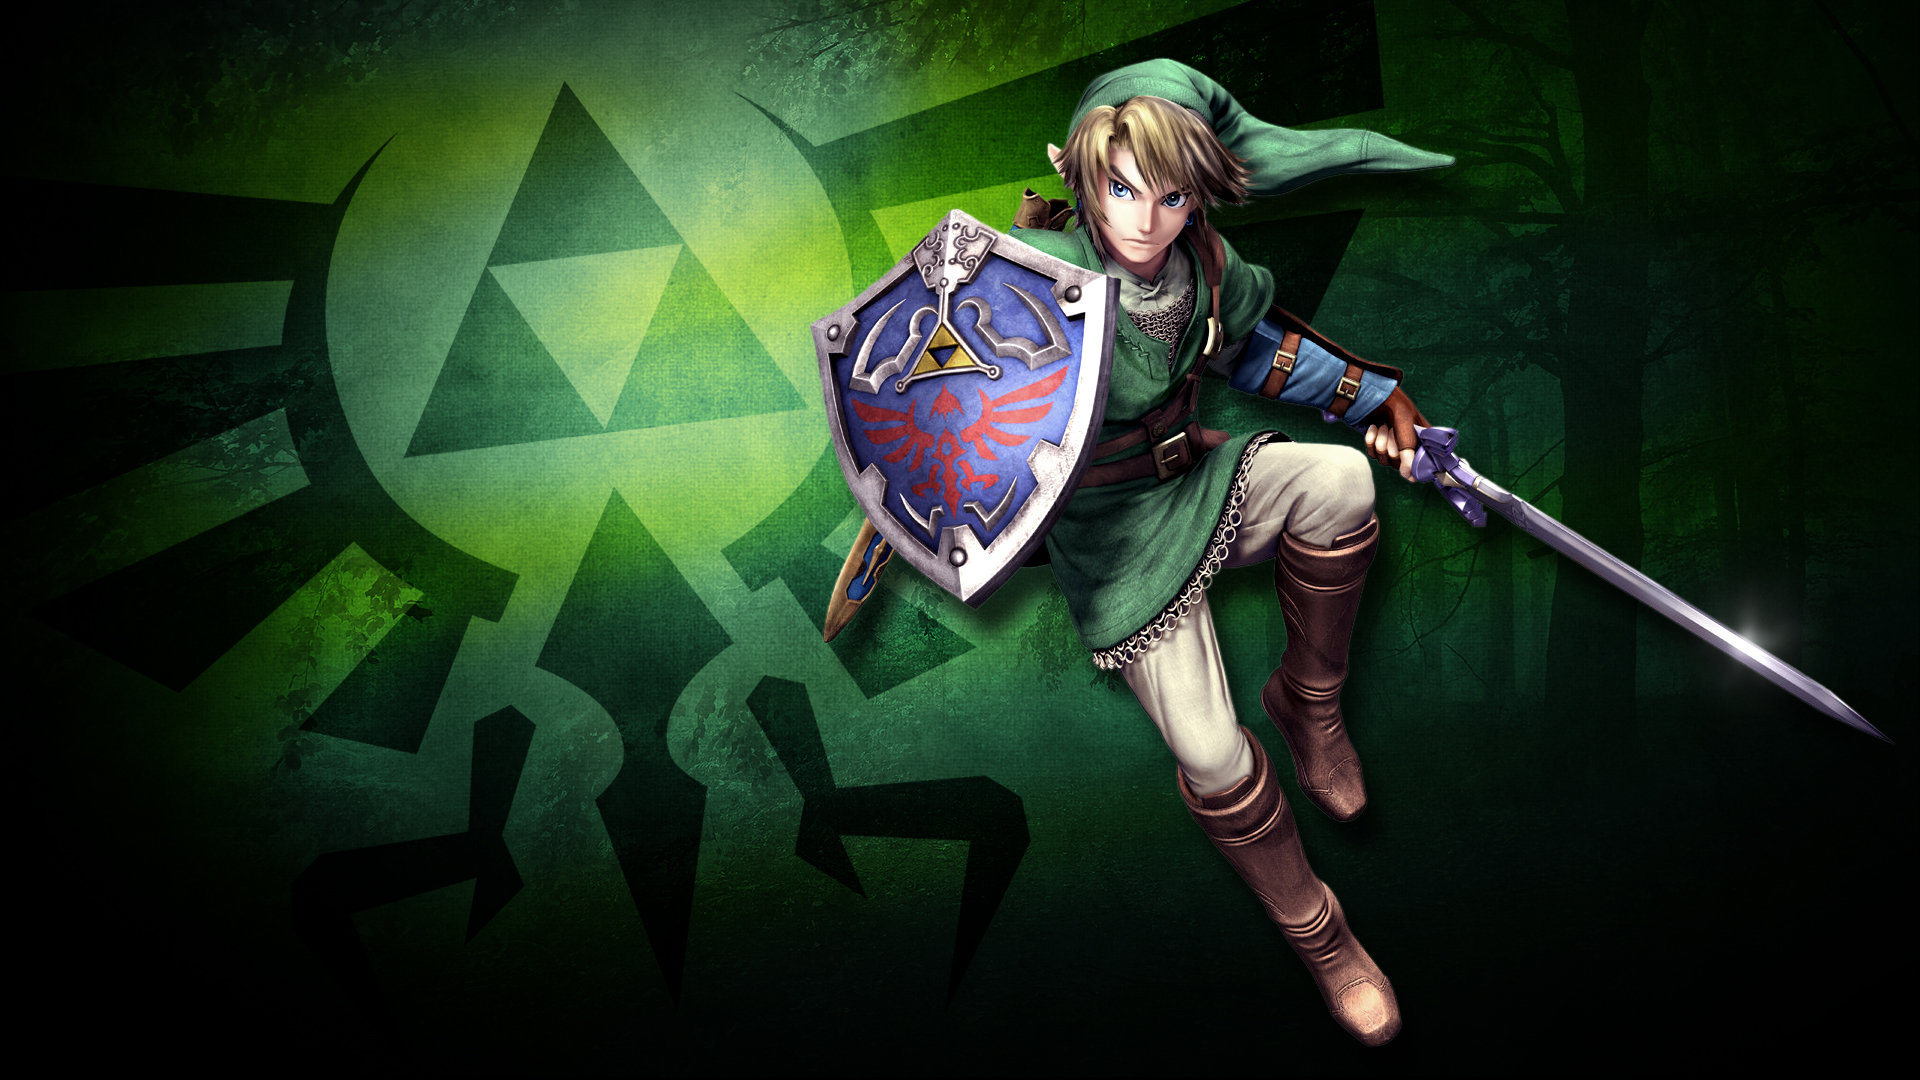 Triforce Wallpapers 1920x1080 Full Hd 1080p Desktop Backgrounds